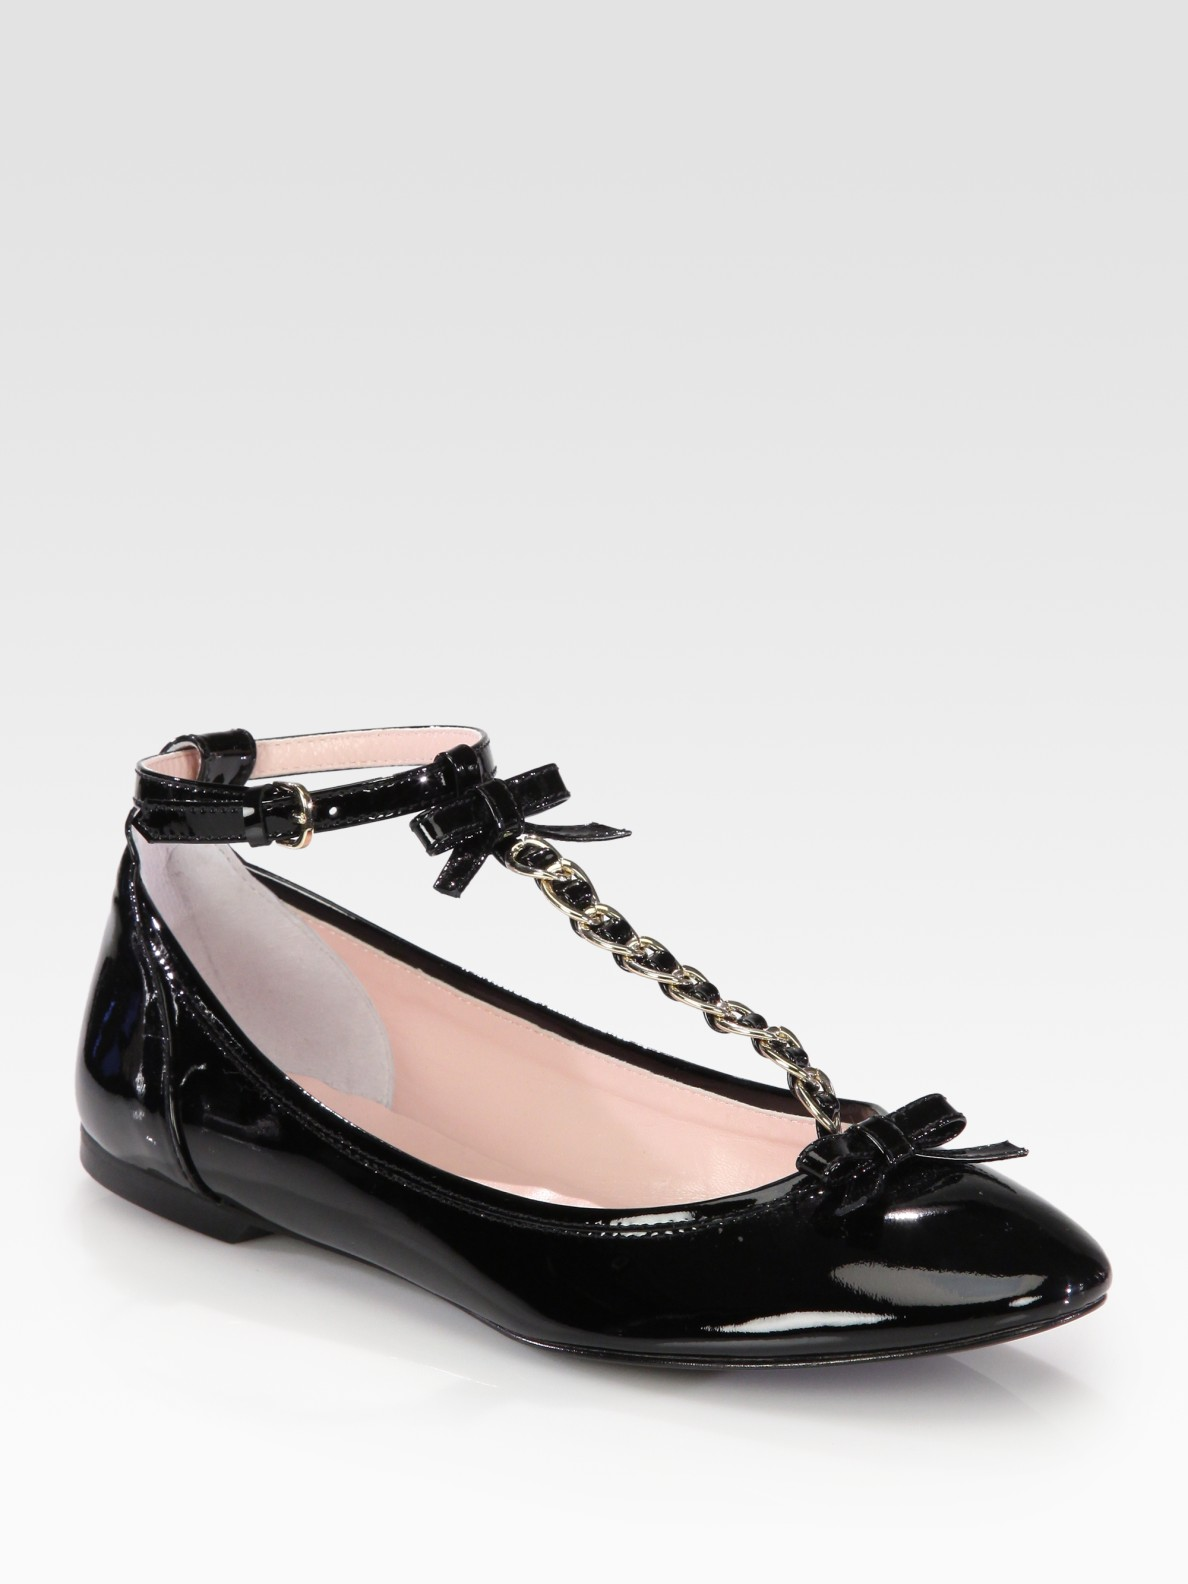 3dd04b3724c1 Lyst - RED Valentino Patent Leather Bow T-Strap Ballet Flats in Black